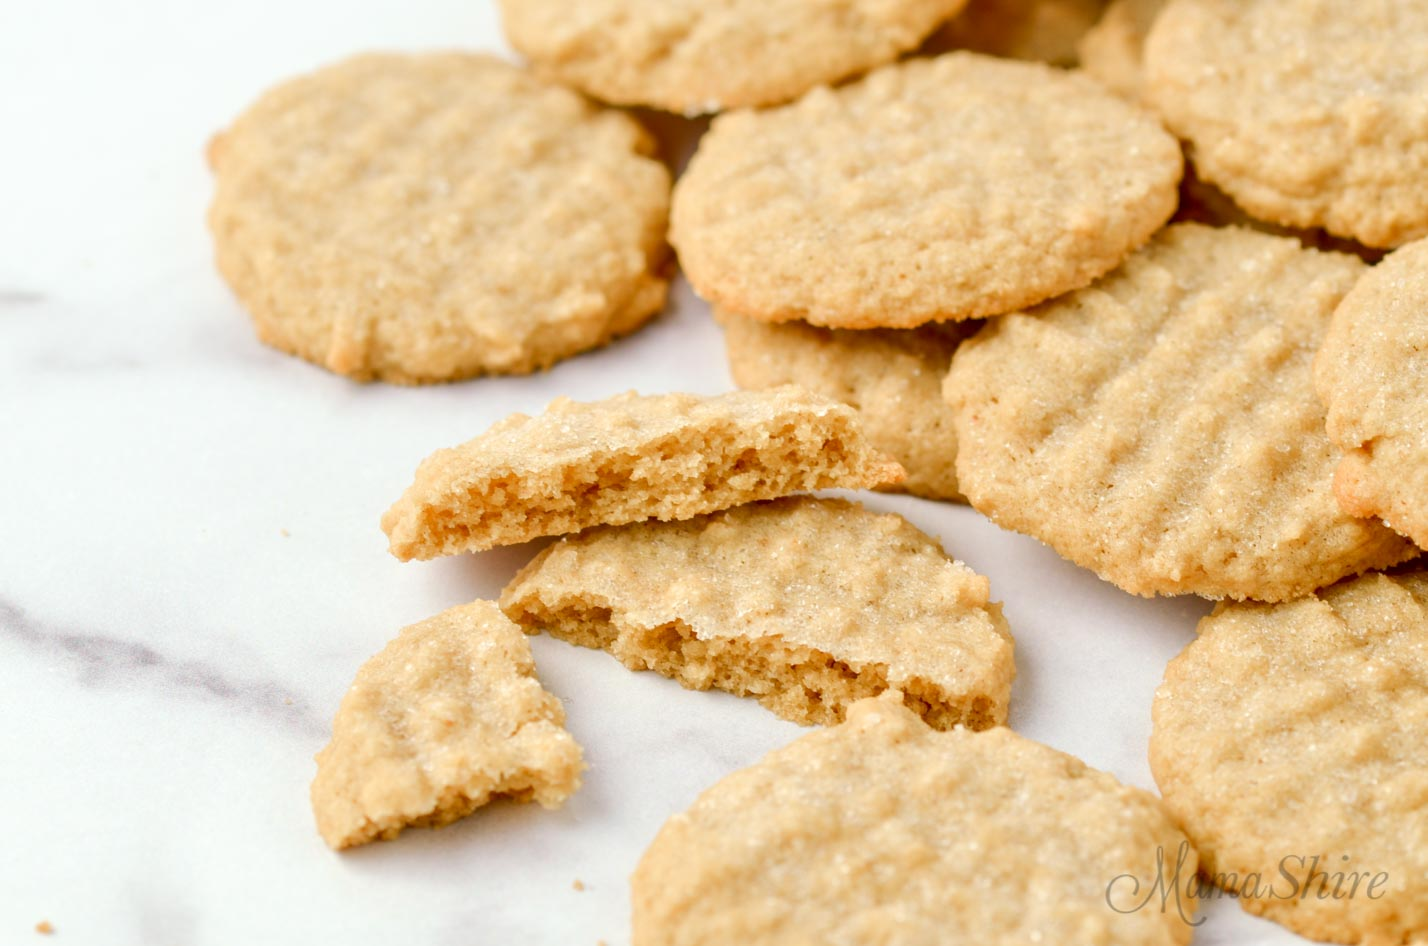 Freshly baked peanut butter cookies made with a gluten-free and dairy-free recipe.